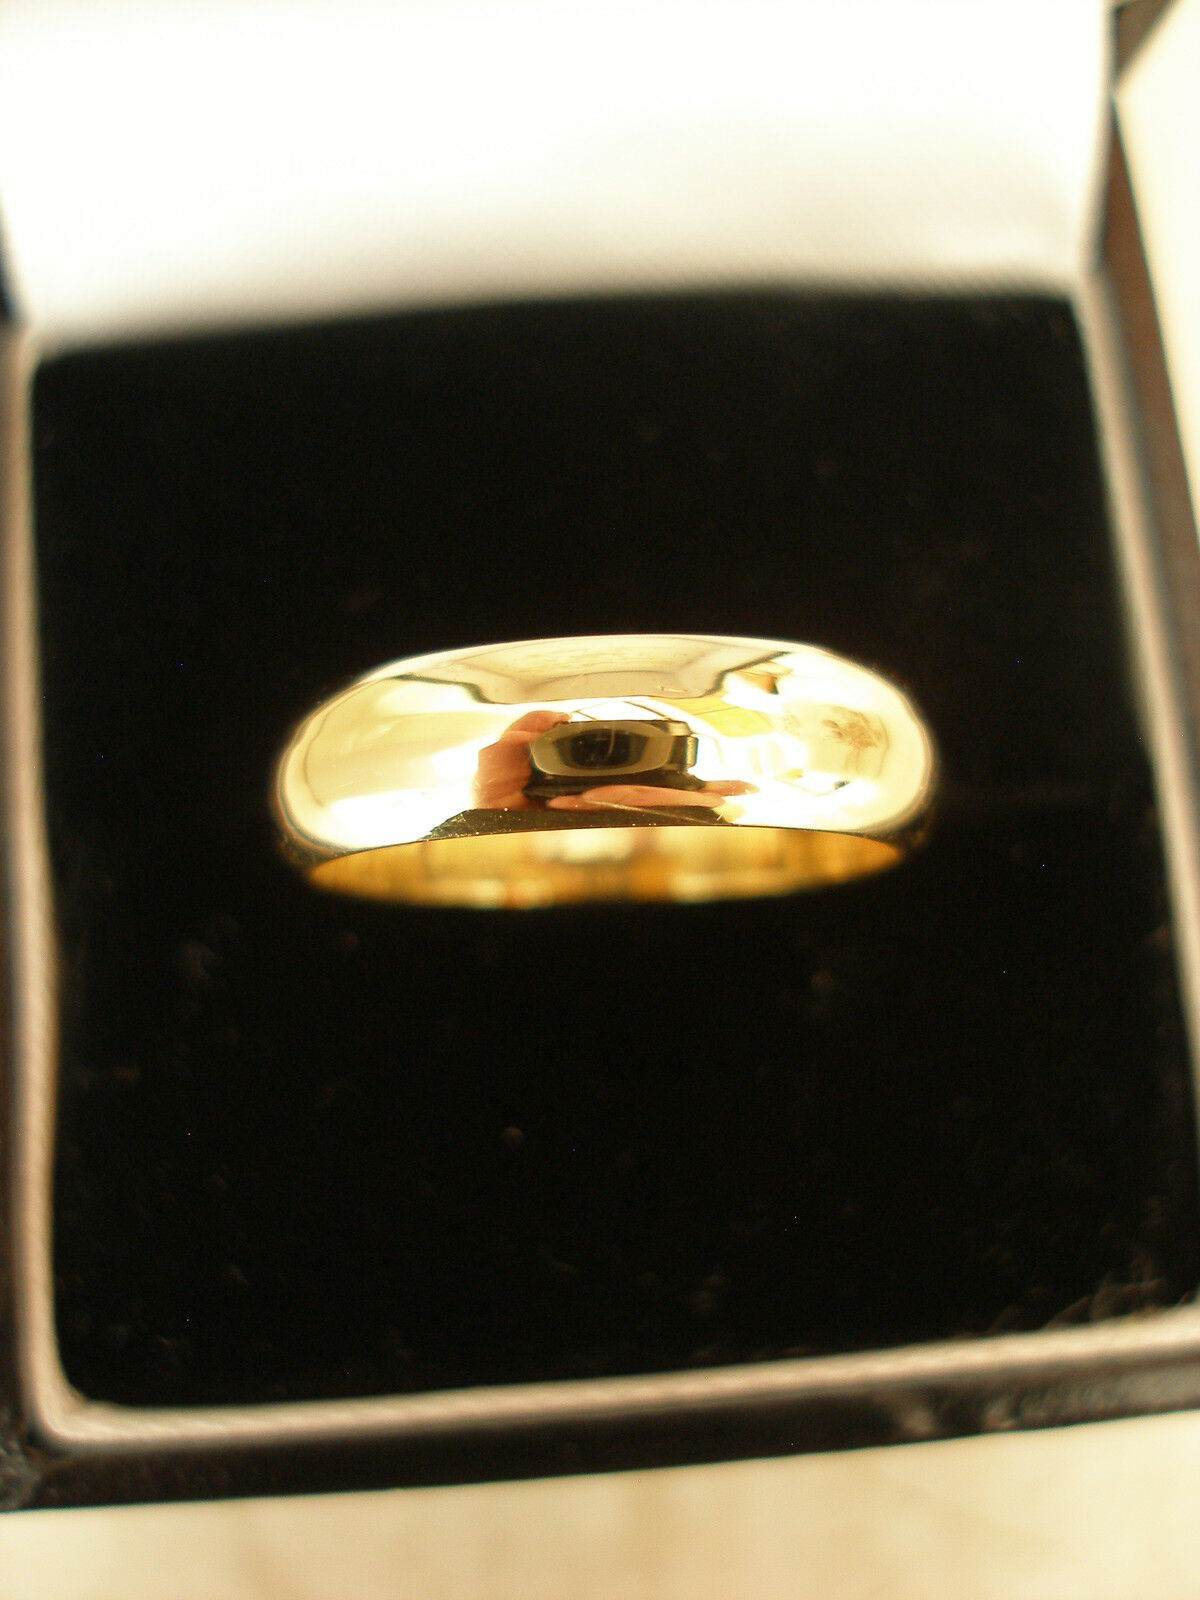 18 CARAT YELLOW gold 5MM HEAVY D SHAPE WEDDING RING BRAND NEW IN BOX